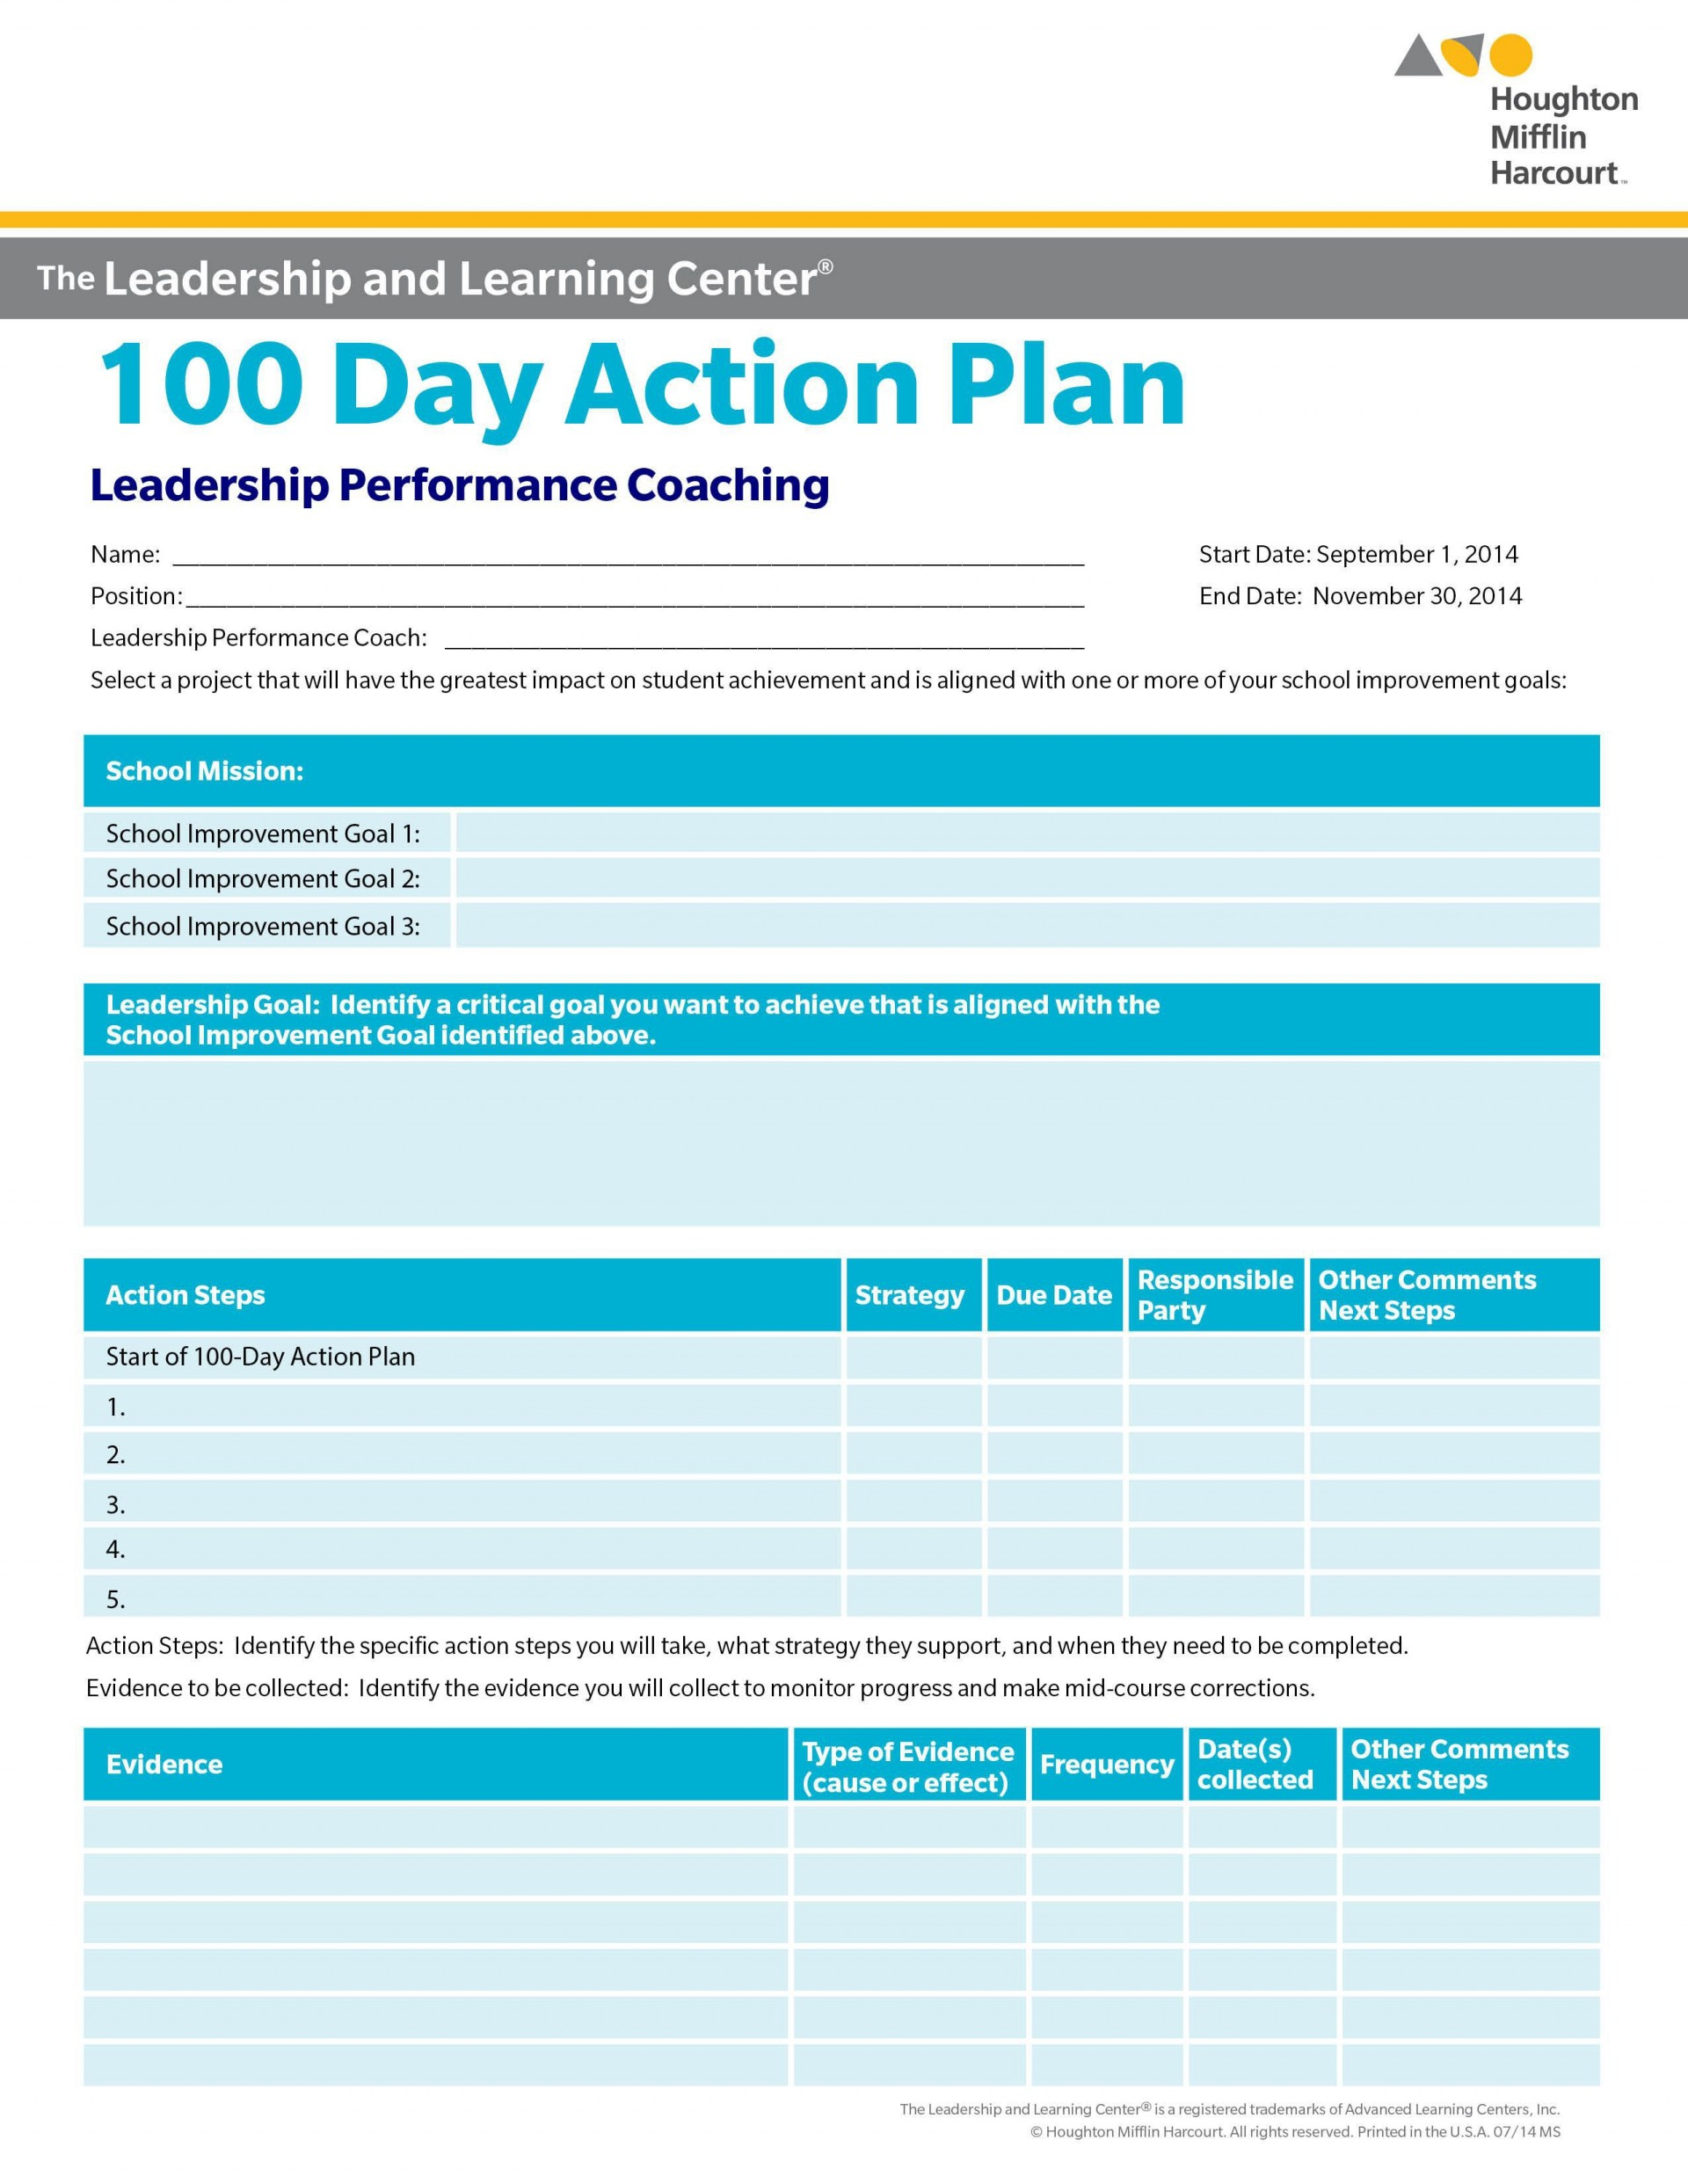 002 Stunning School Improvement Planning Template Example  Templates Plan Sample Deped 2016 South Africa1920